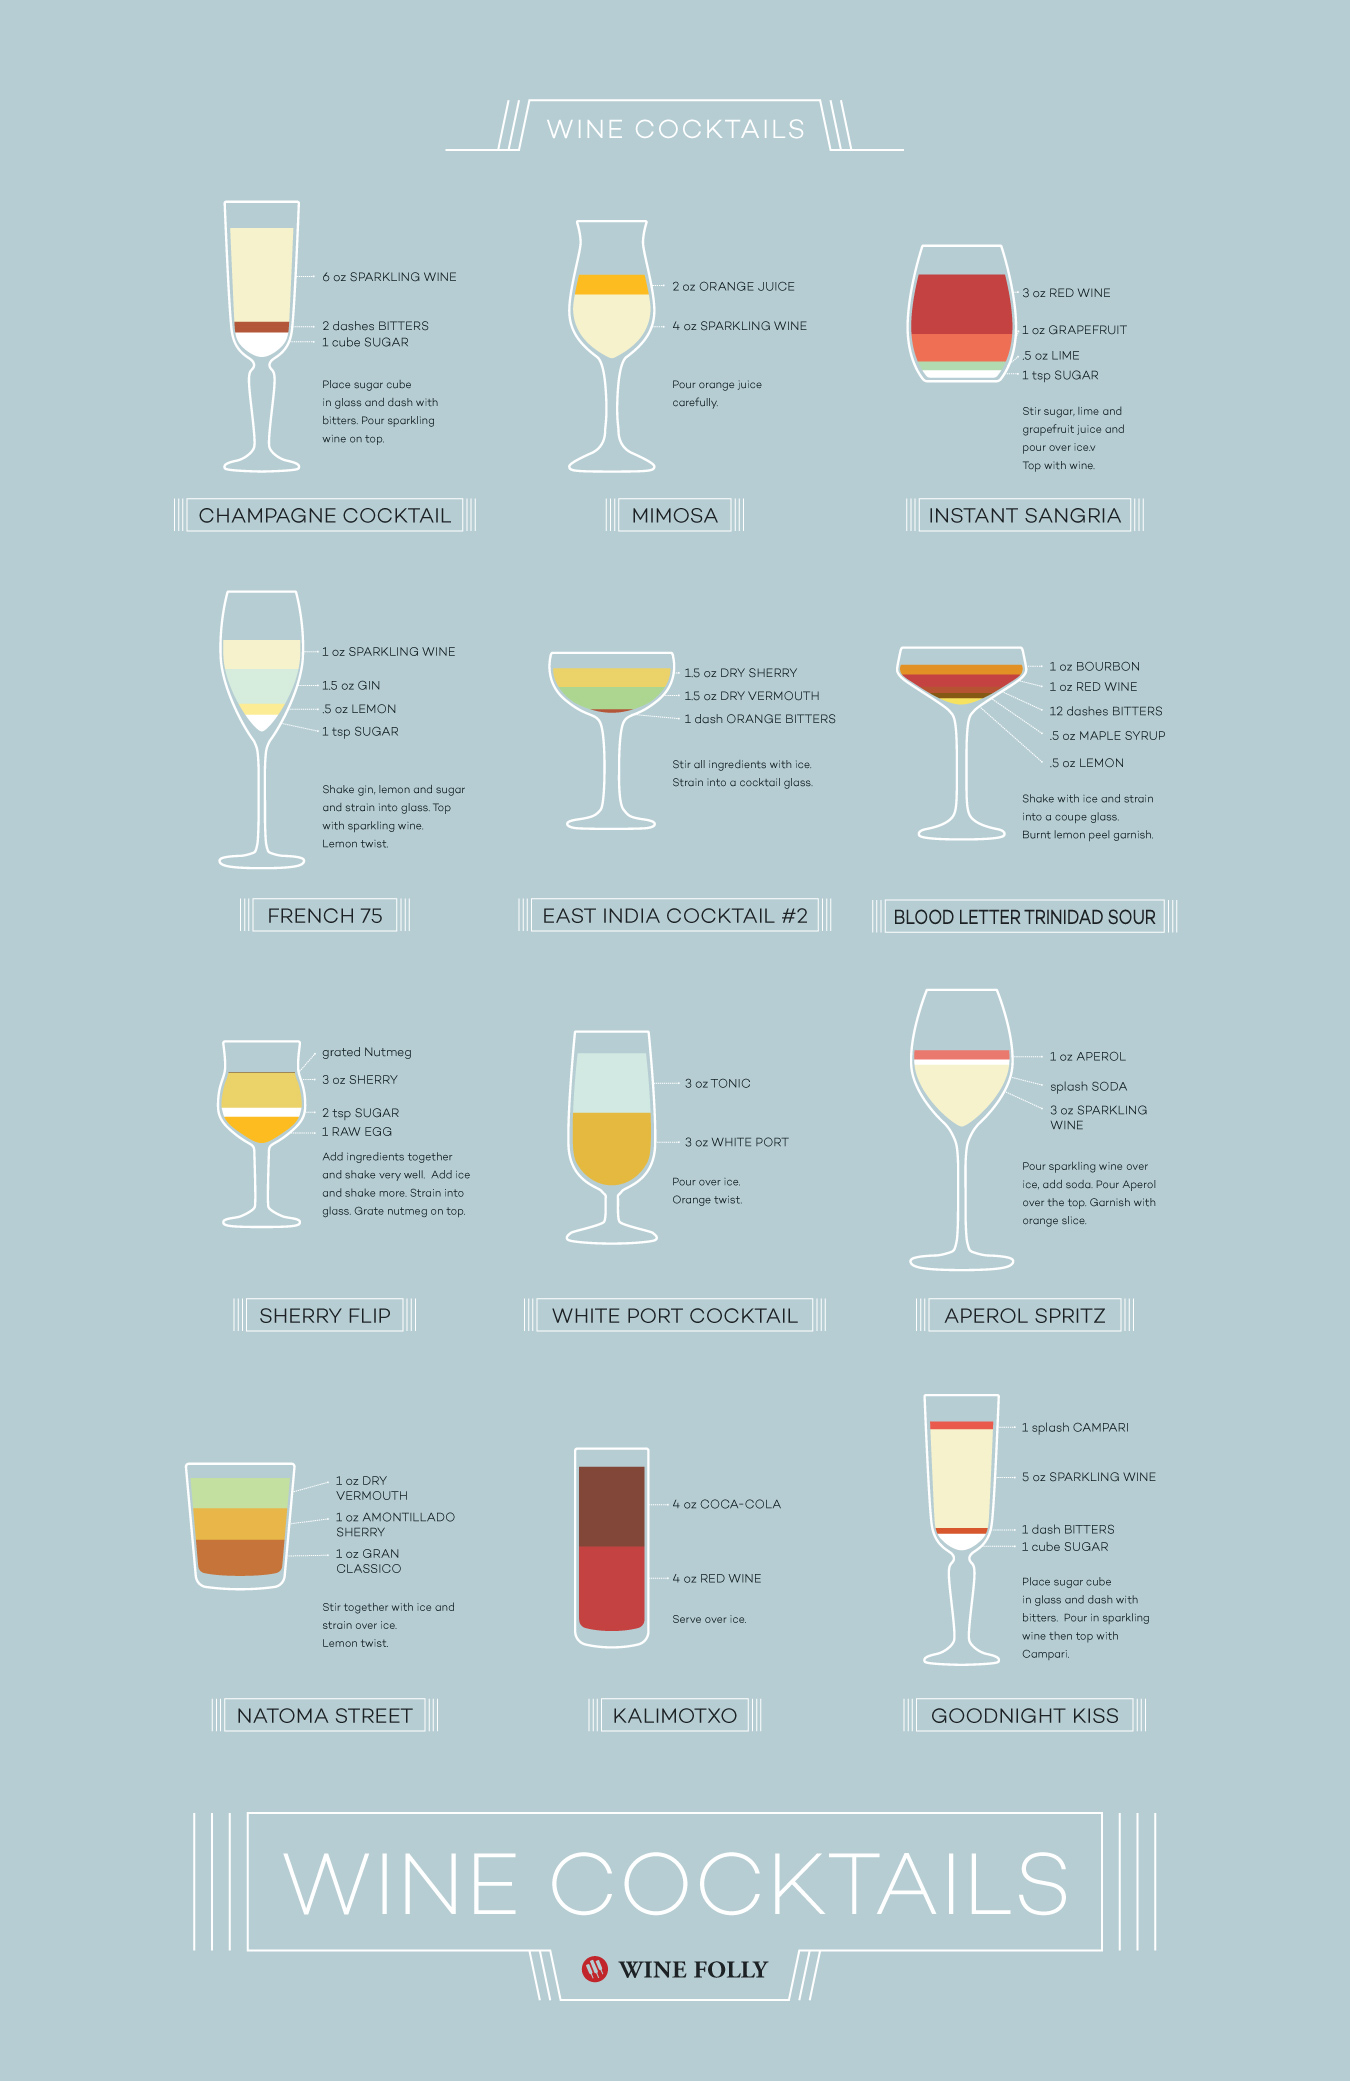 Wine Cocktails Infographic by Wine Folly